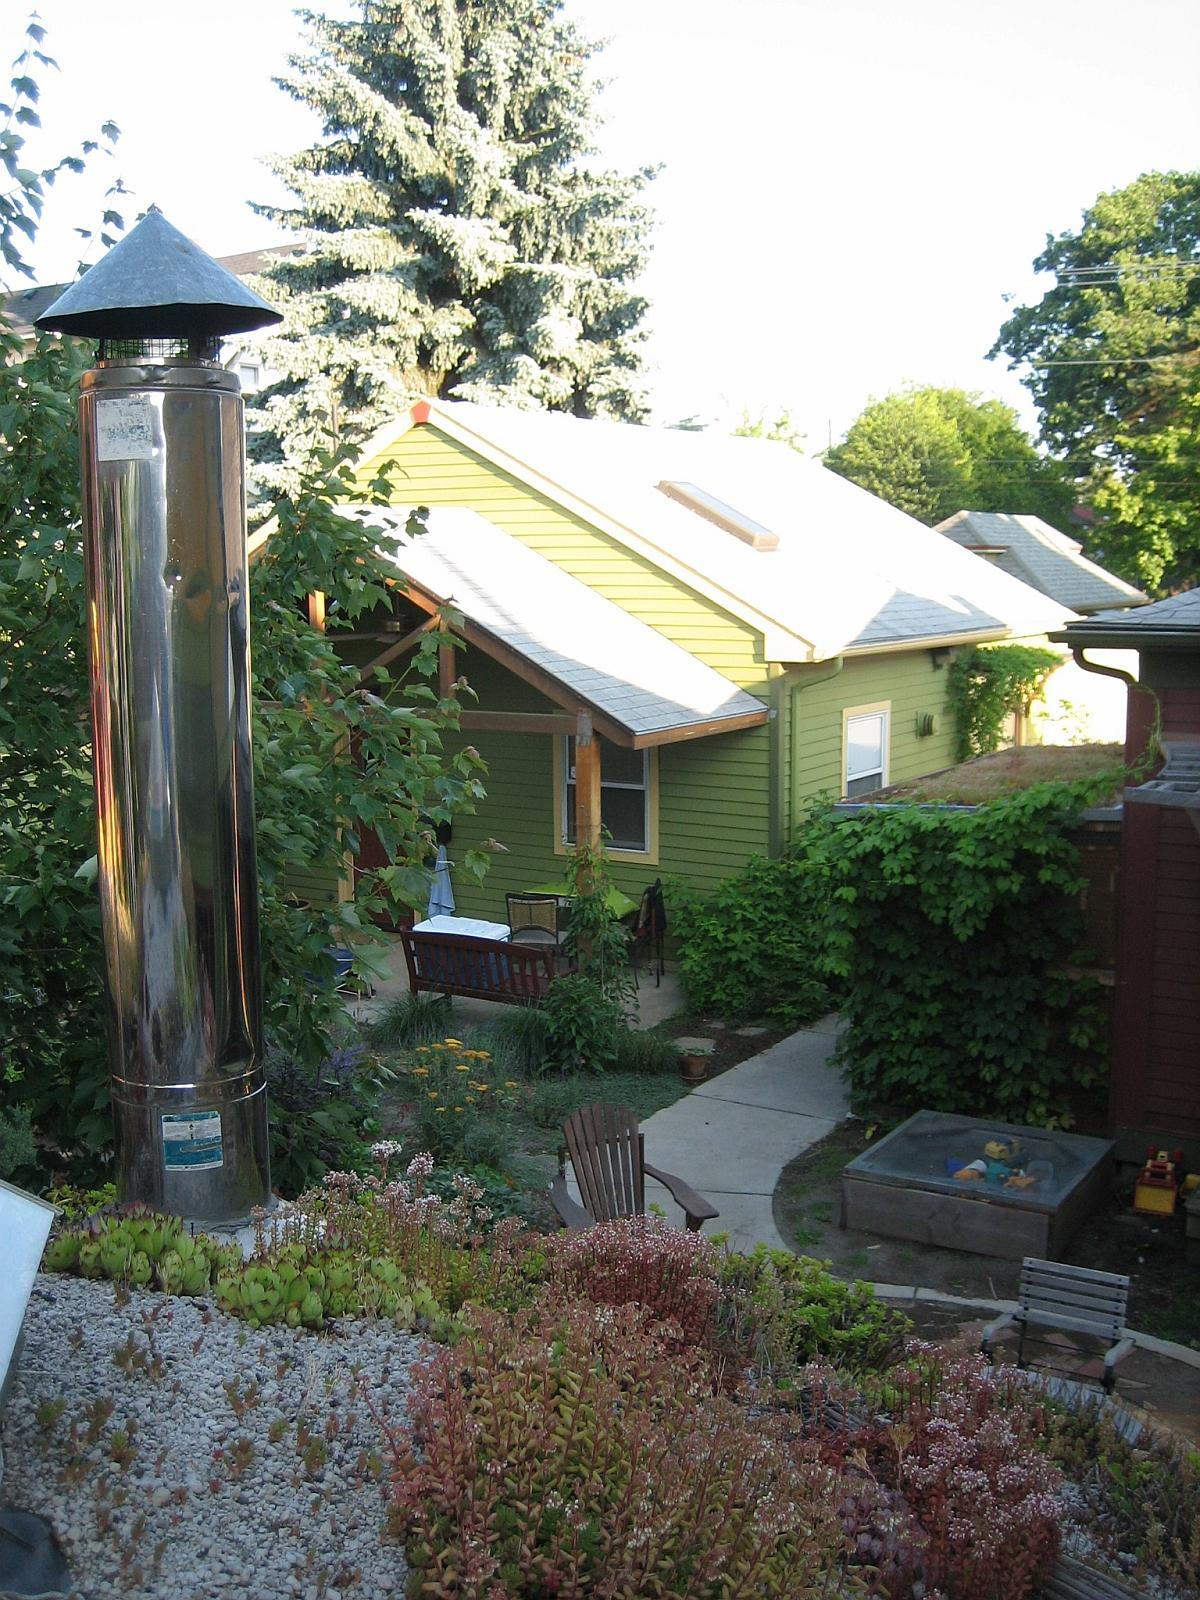 Cohousing living large in small houses small house bliss - Gallery Sabin Green Small House Bliss